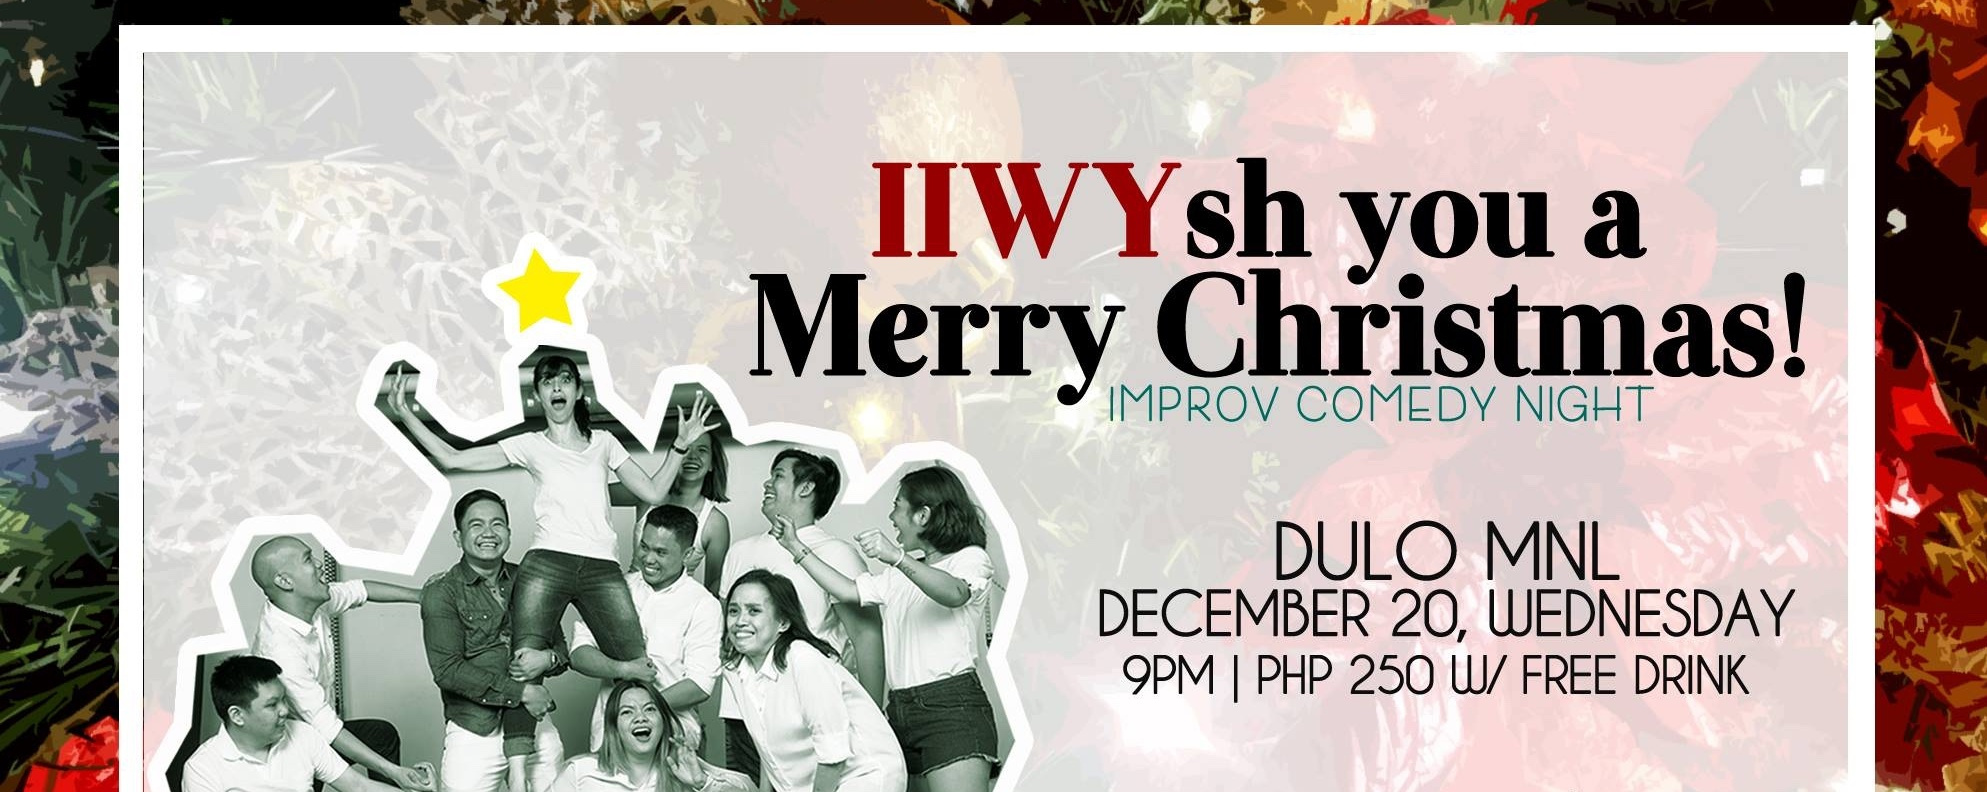 IIWYsh You A Merry Christmas!